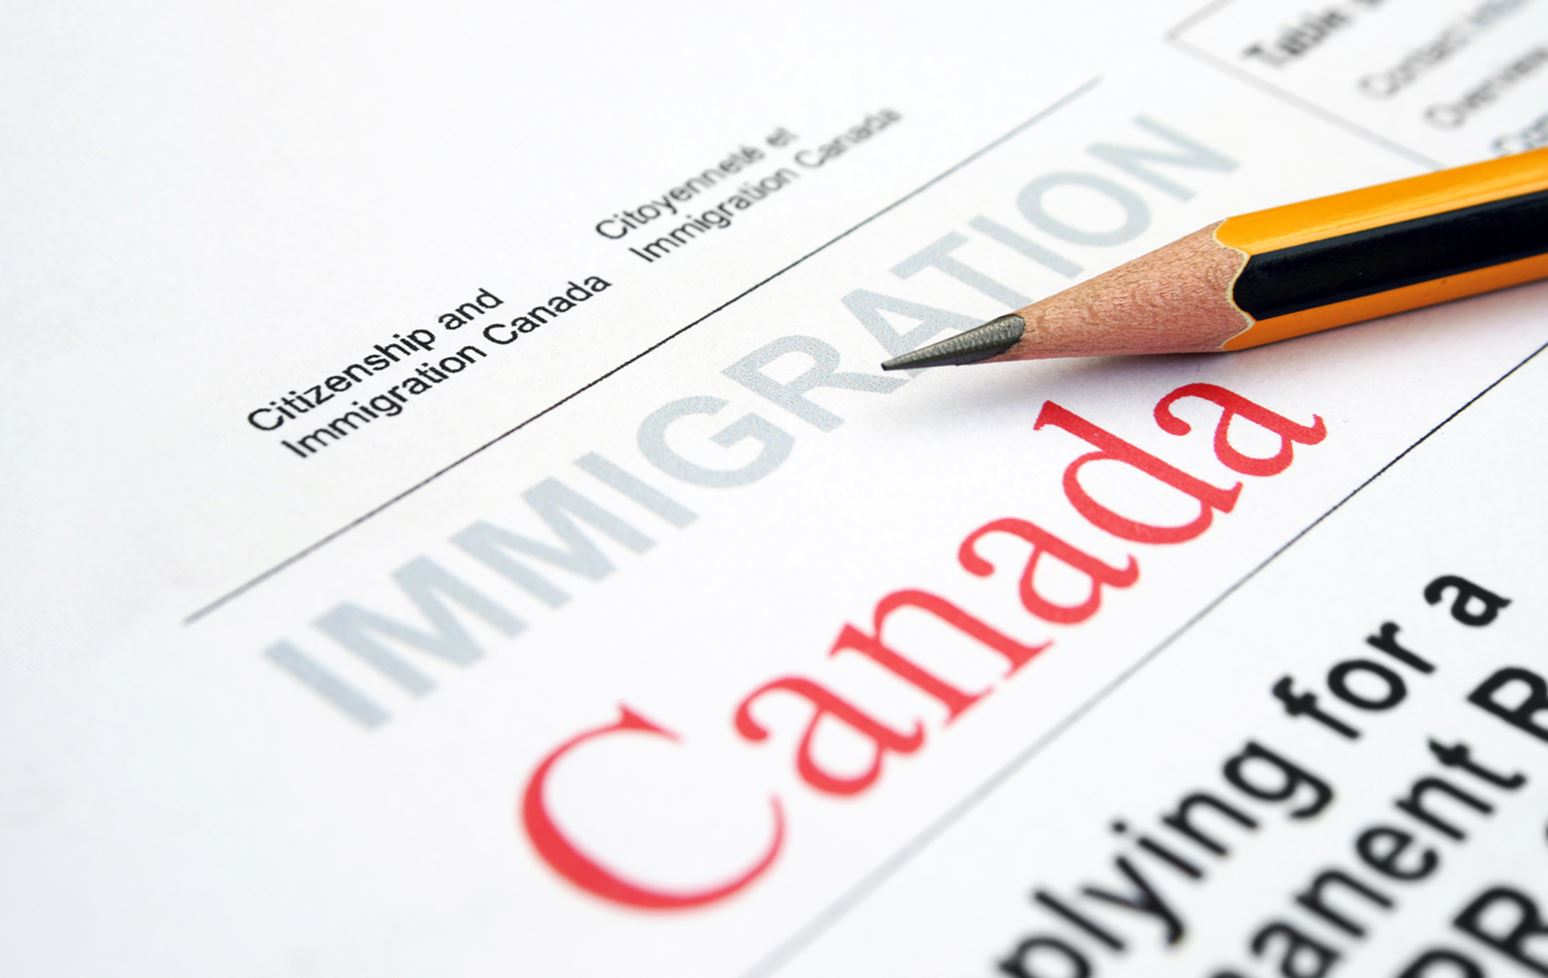 Andreas Schotter | Could post-election immigrants bolster Canadian tech?